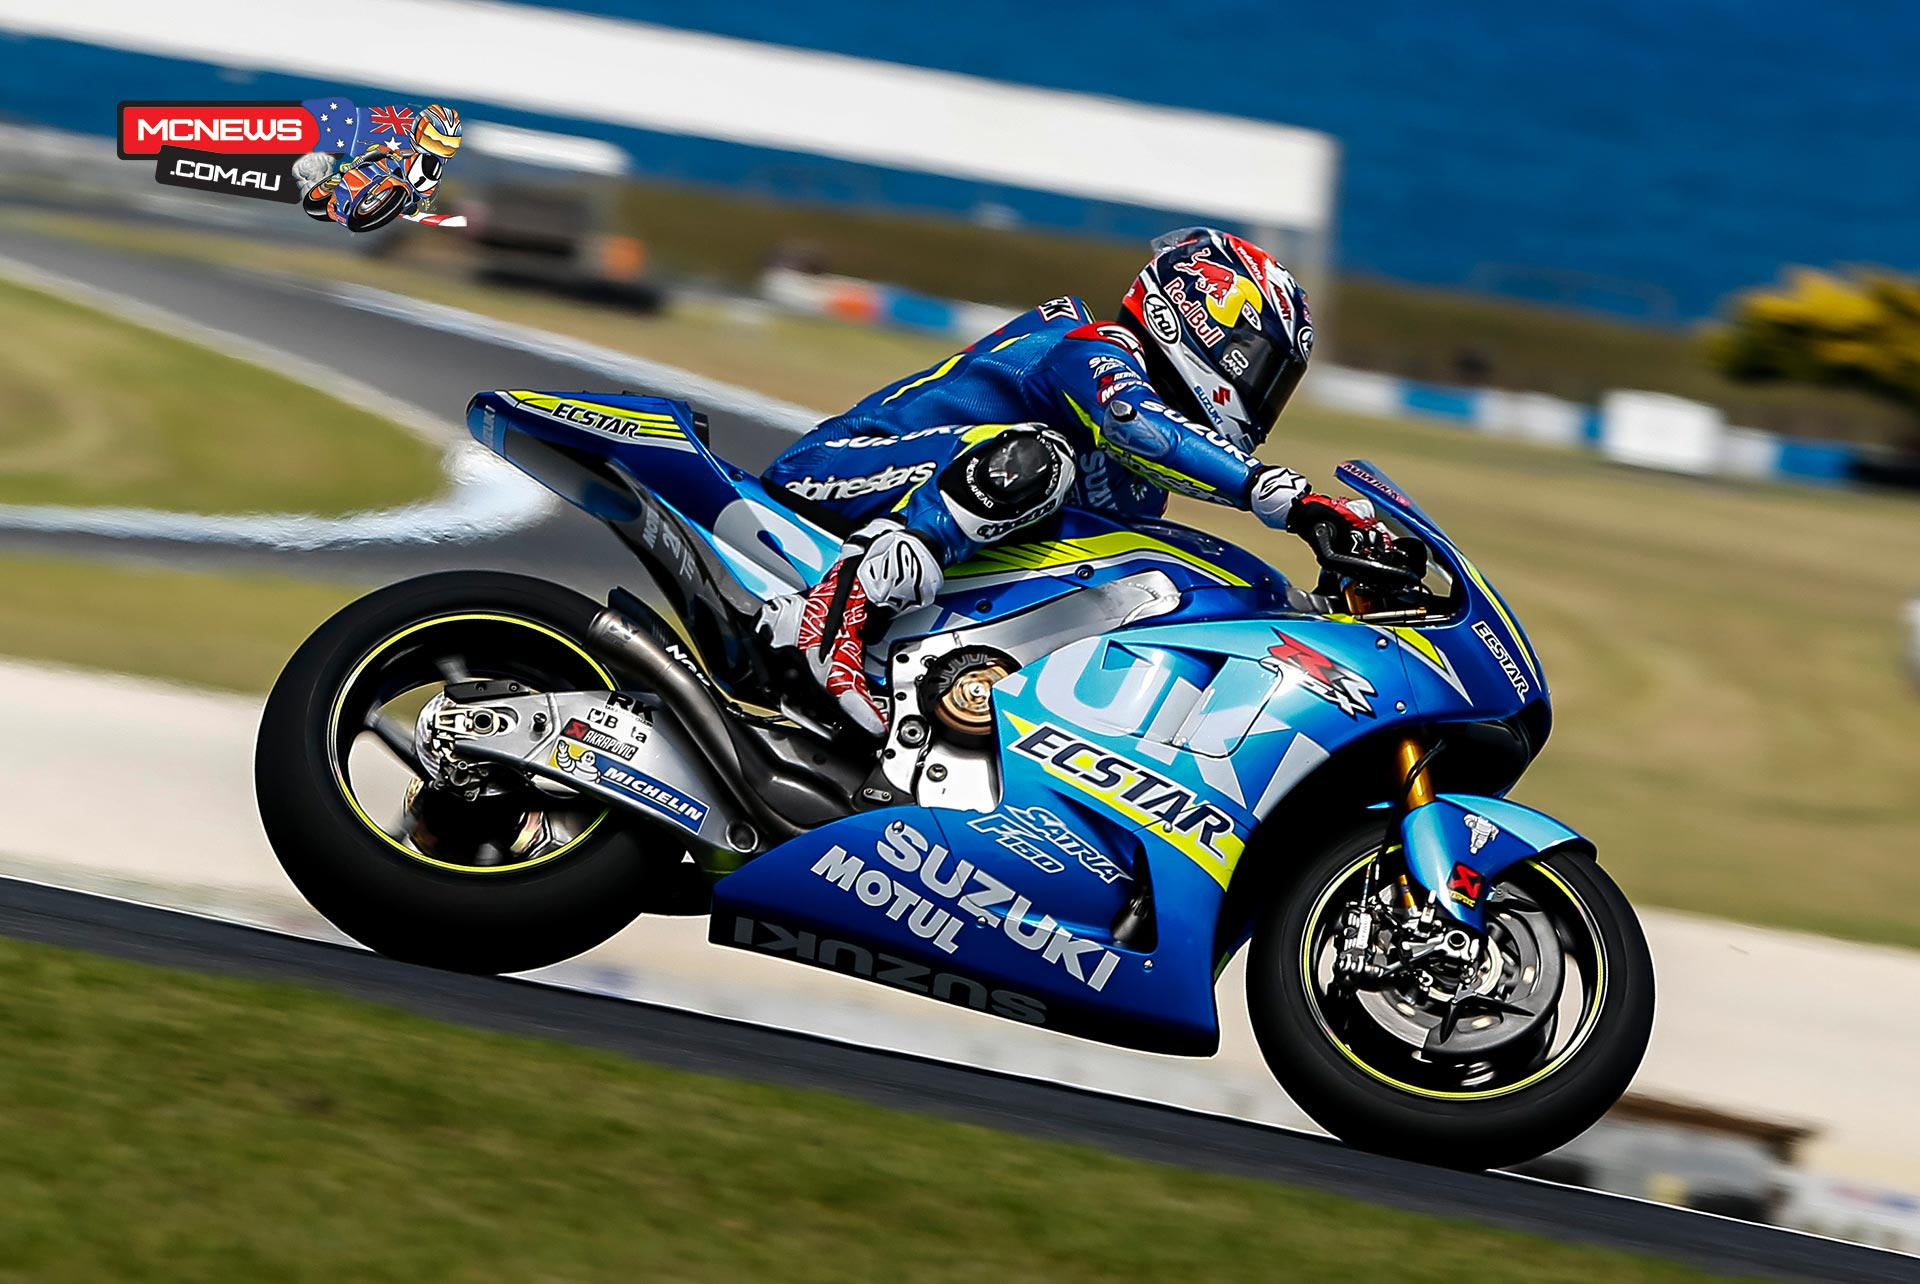 MotoGP 2016 - Phillip Island Test February - Maverick Vinales